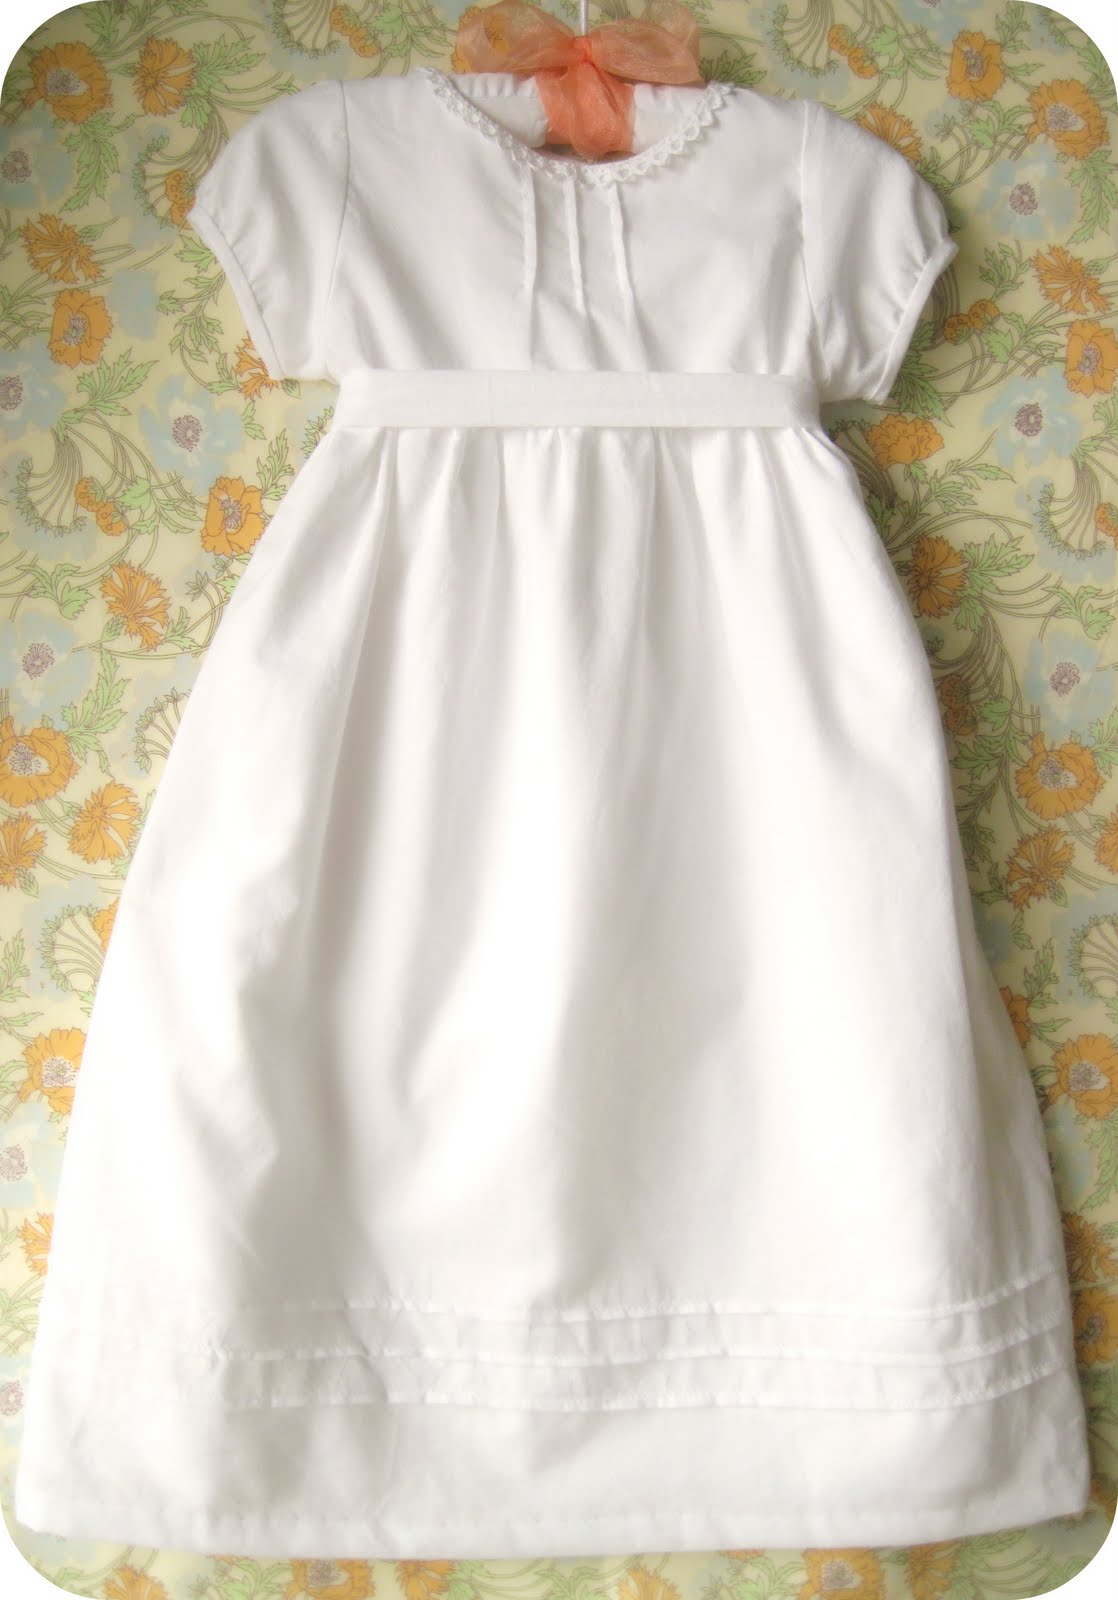 Ruby\'s blessing dress - Home made by jill 2013